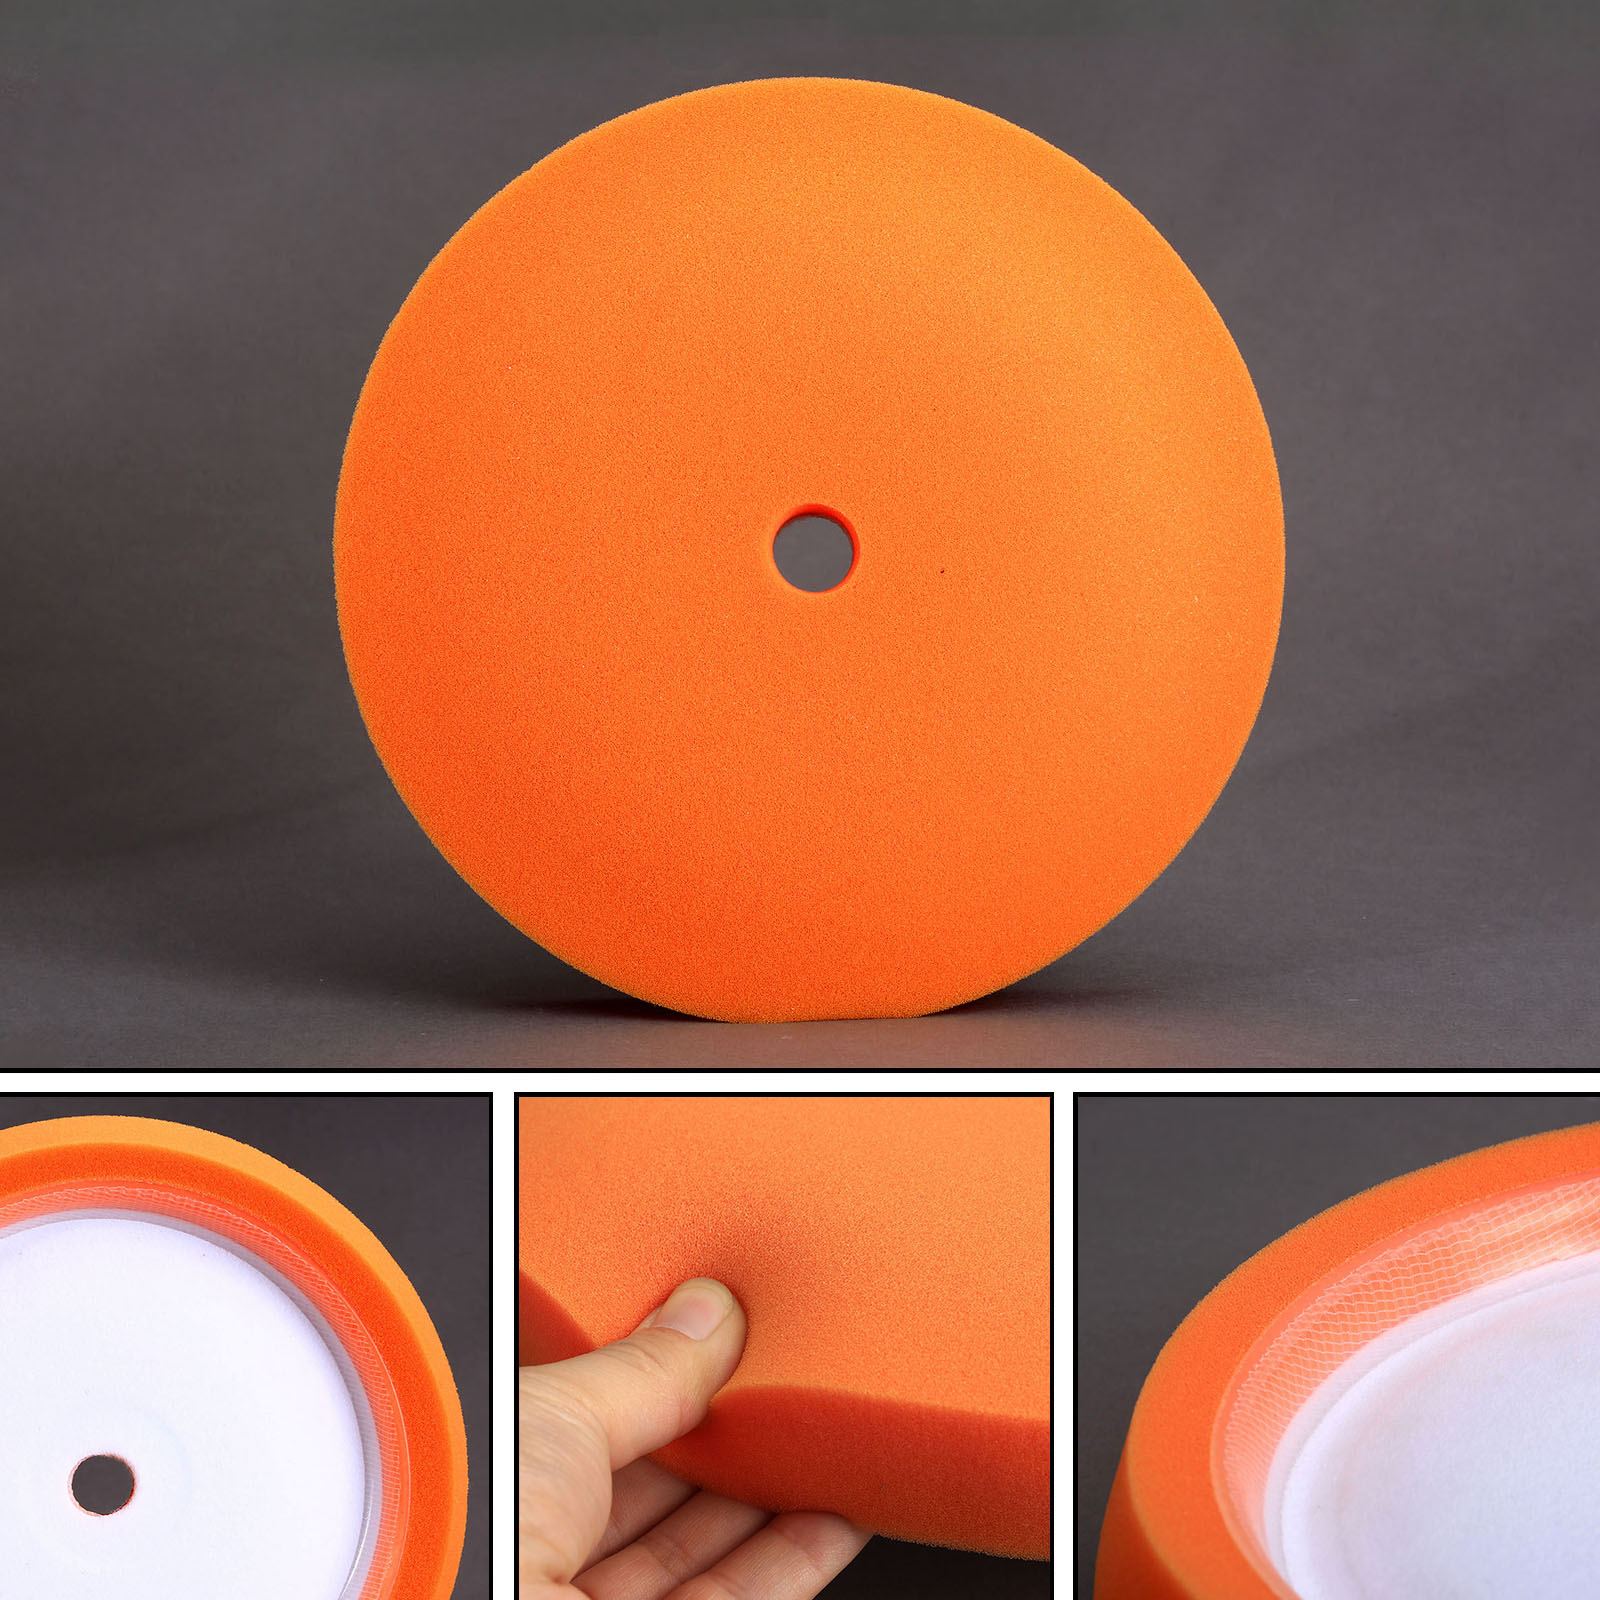 Car Styling 1PC 7 Inch Car Wash Sponge Polishing Foam Buffing Pad Car Cleaning Detailing Waxing Tools For Auto Care Car Polisher